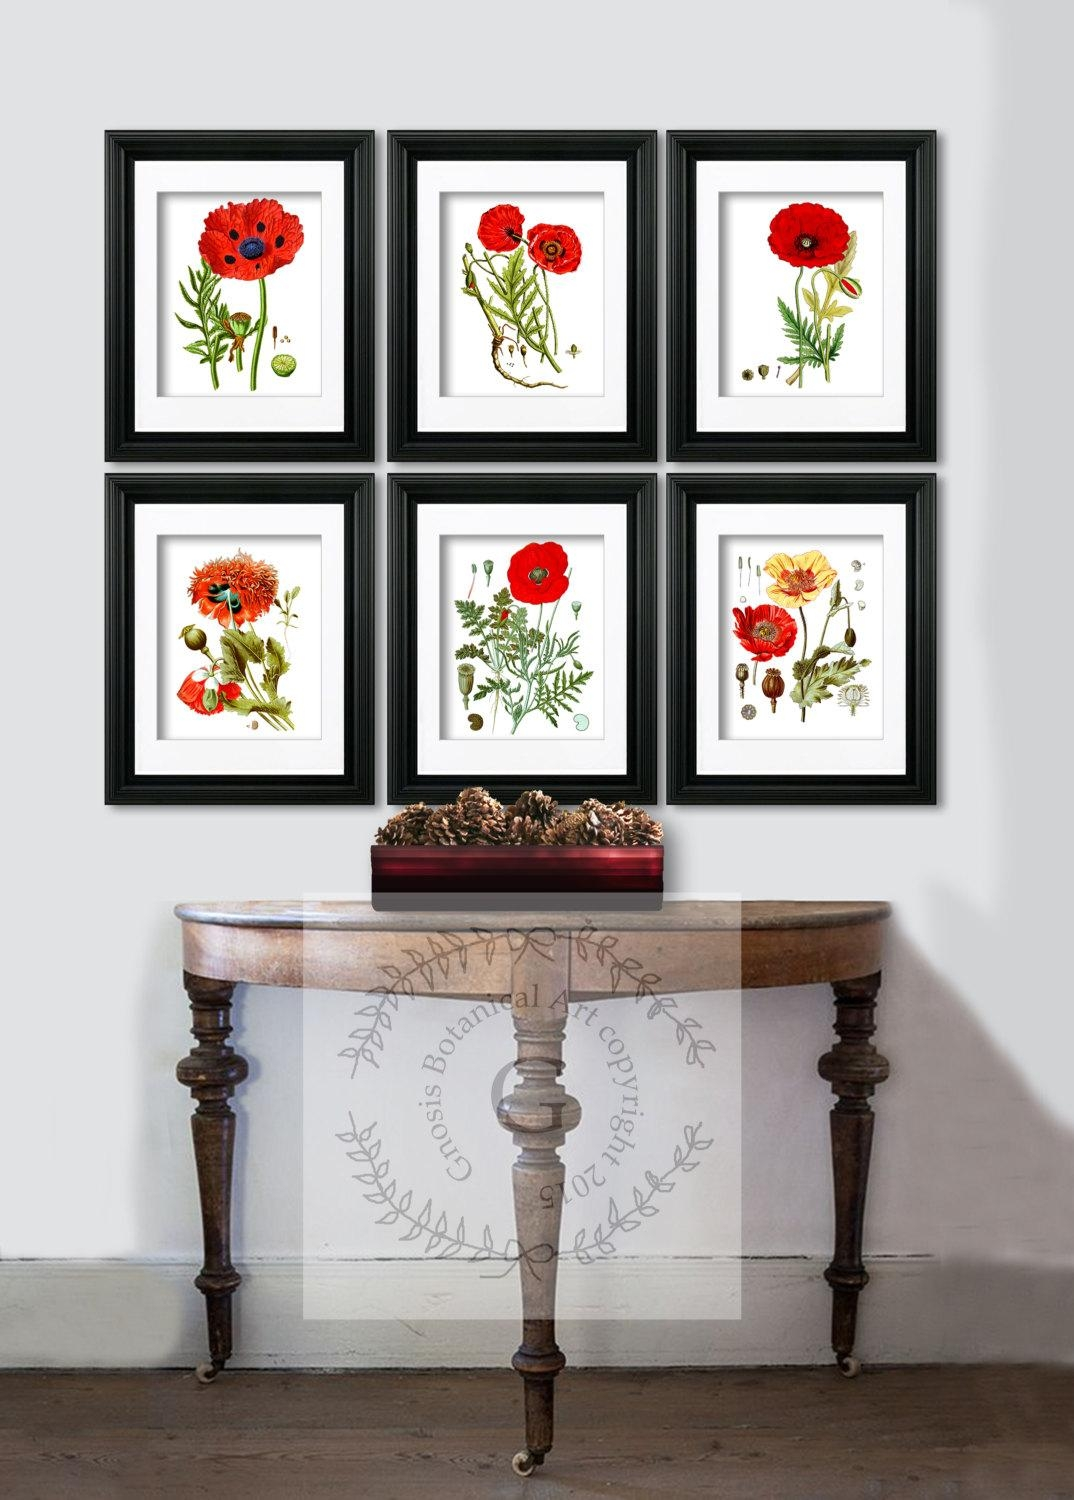 Red Poppy Decor Botanical Prints Red Flowers Poppy Wall Art With Regard To Botanical Prints Etsy (Image 19 of 20)